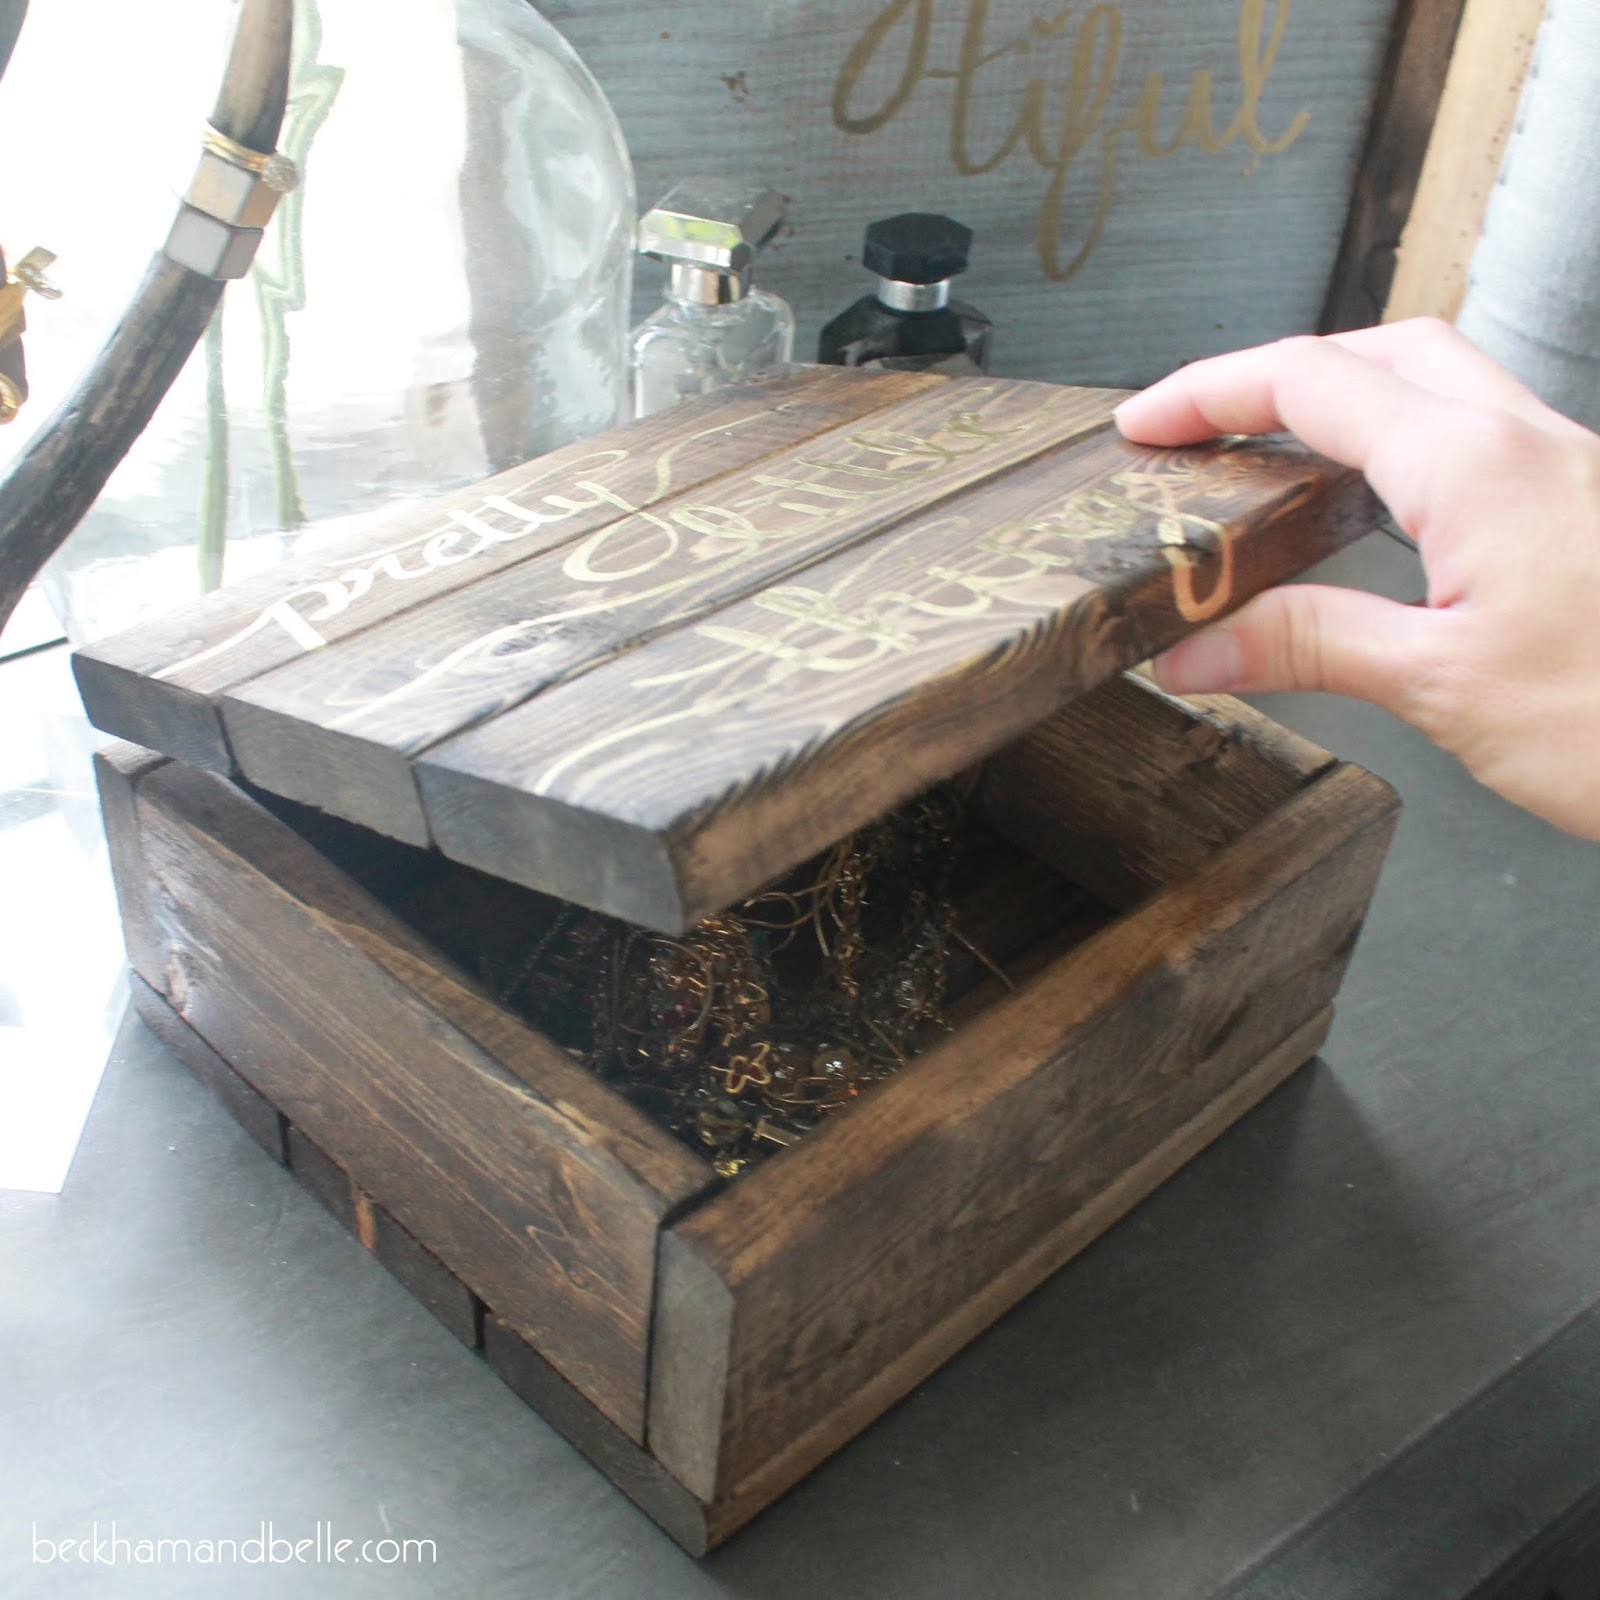 diy wooden jewelry accessories box beckham belle